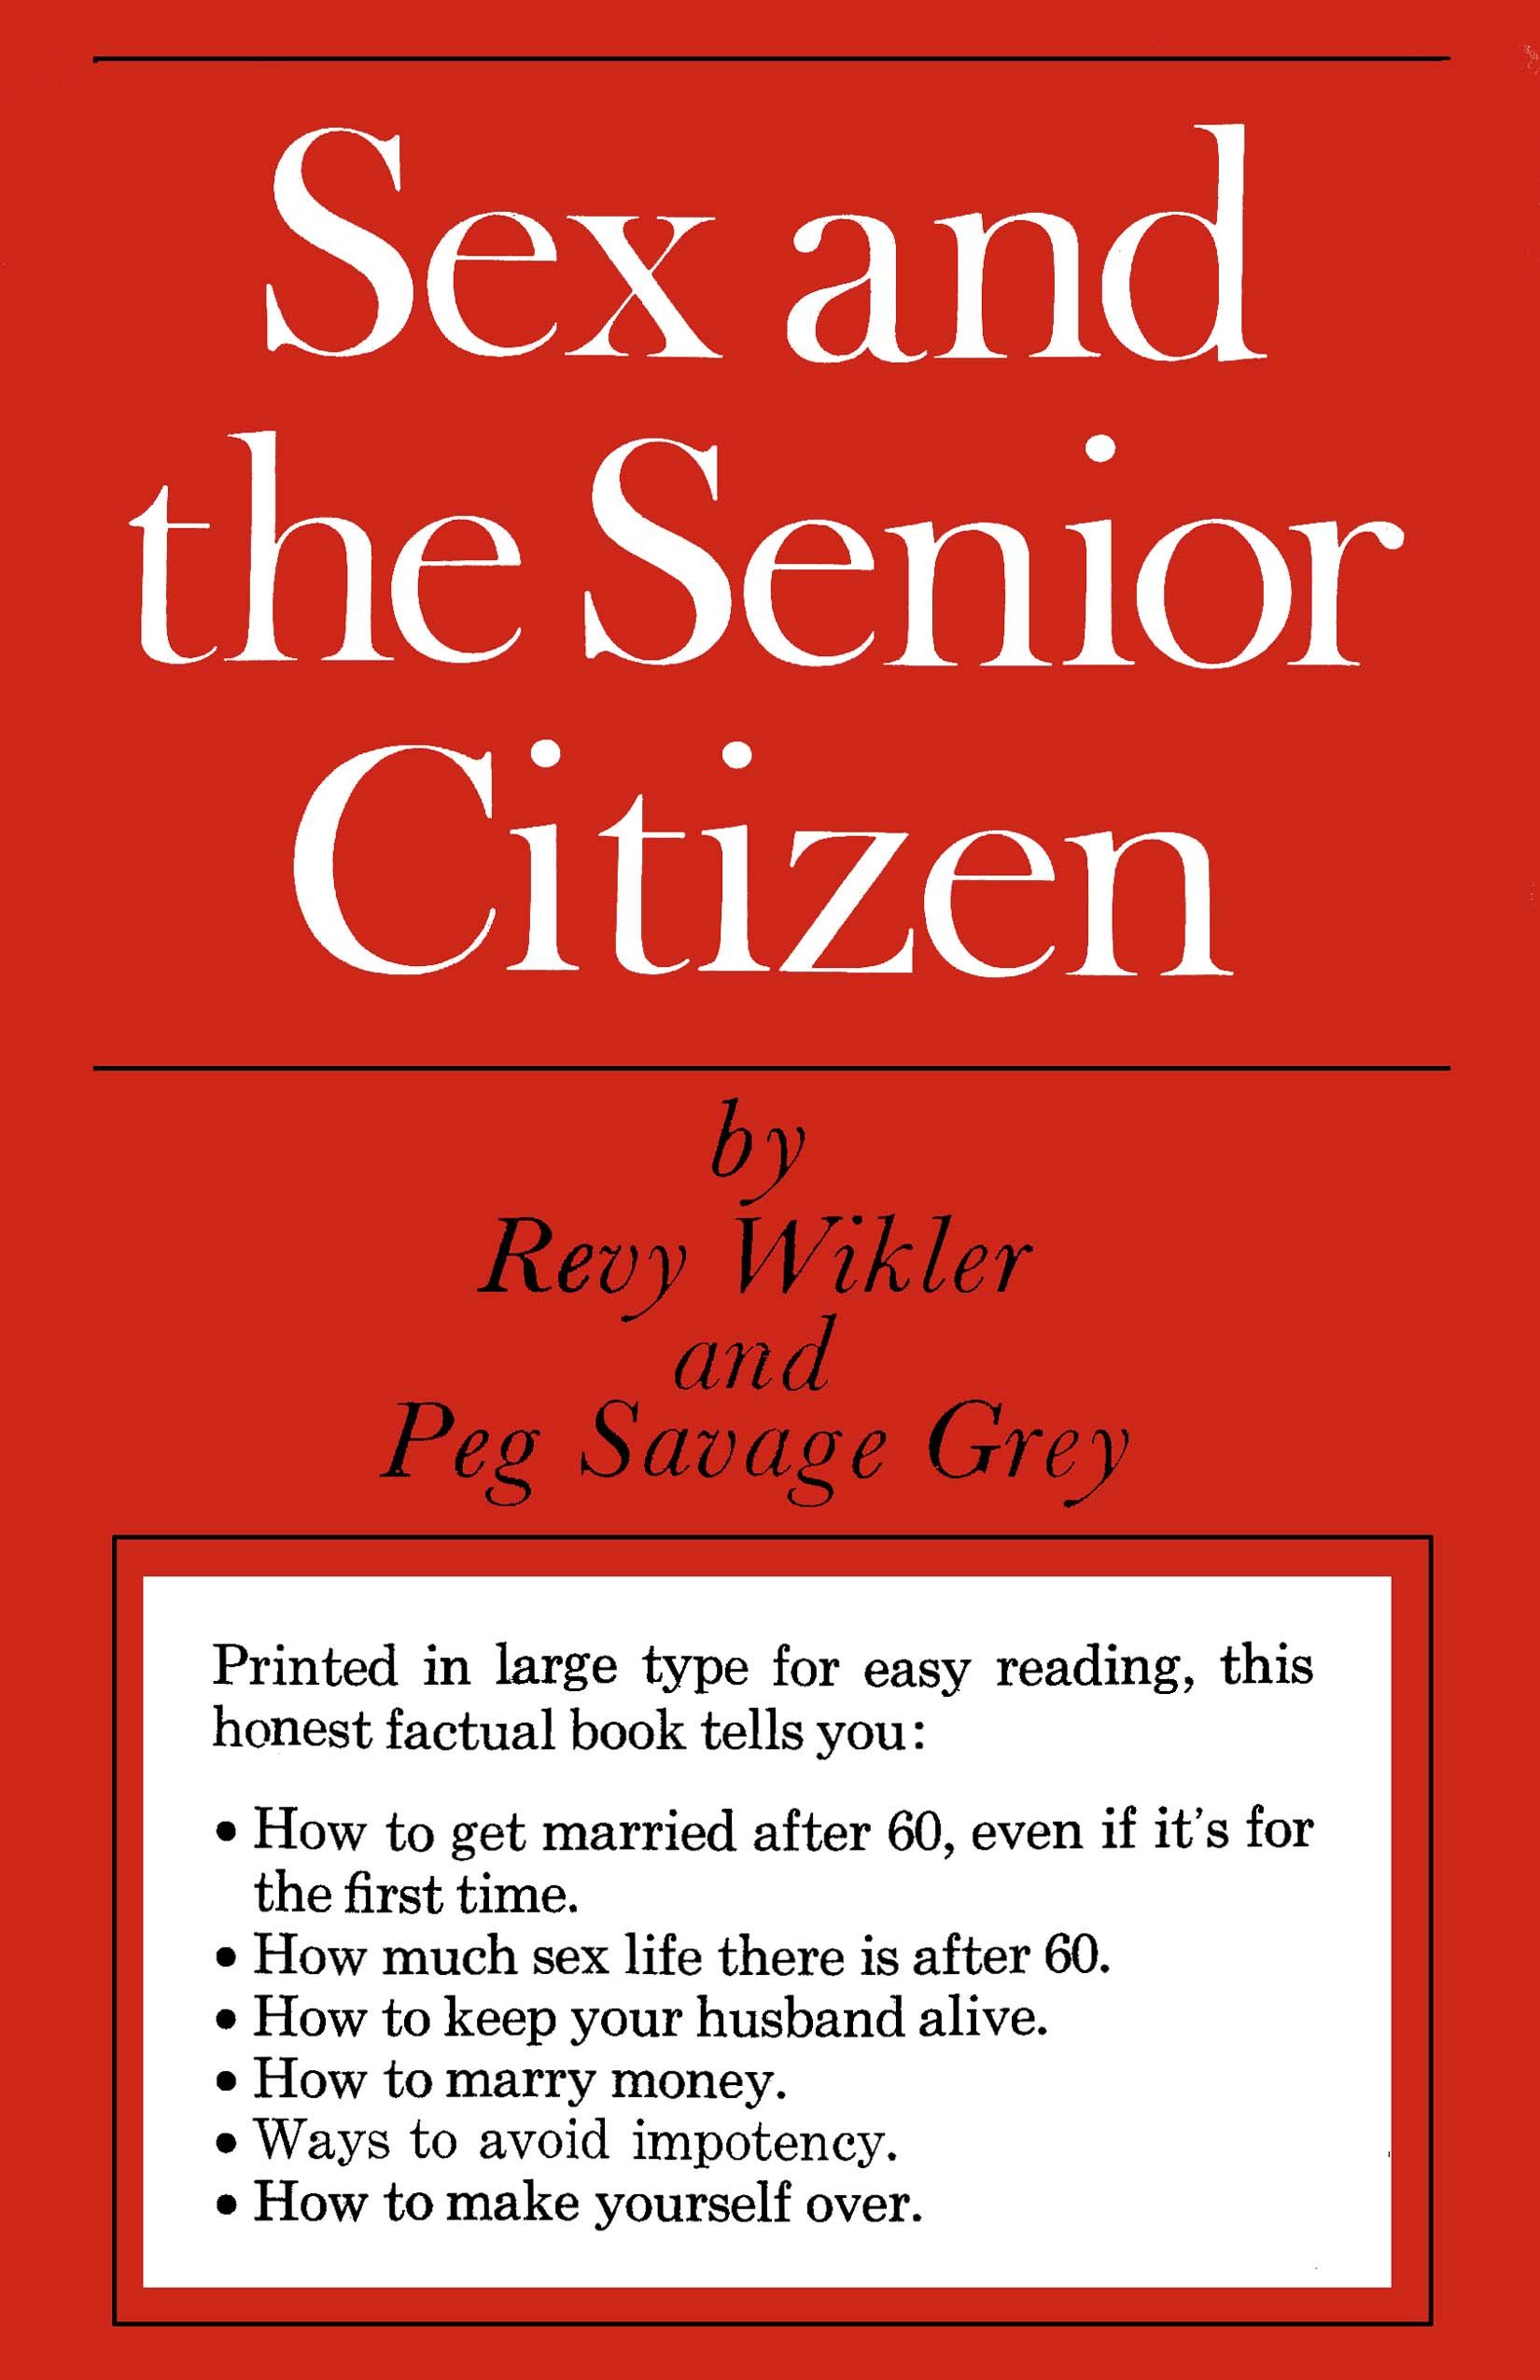 Sex and the Senior Citizen